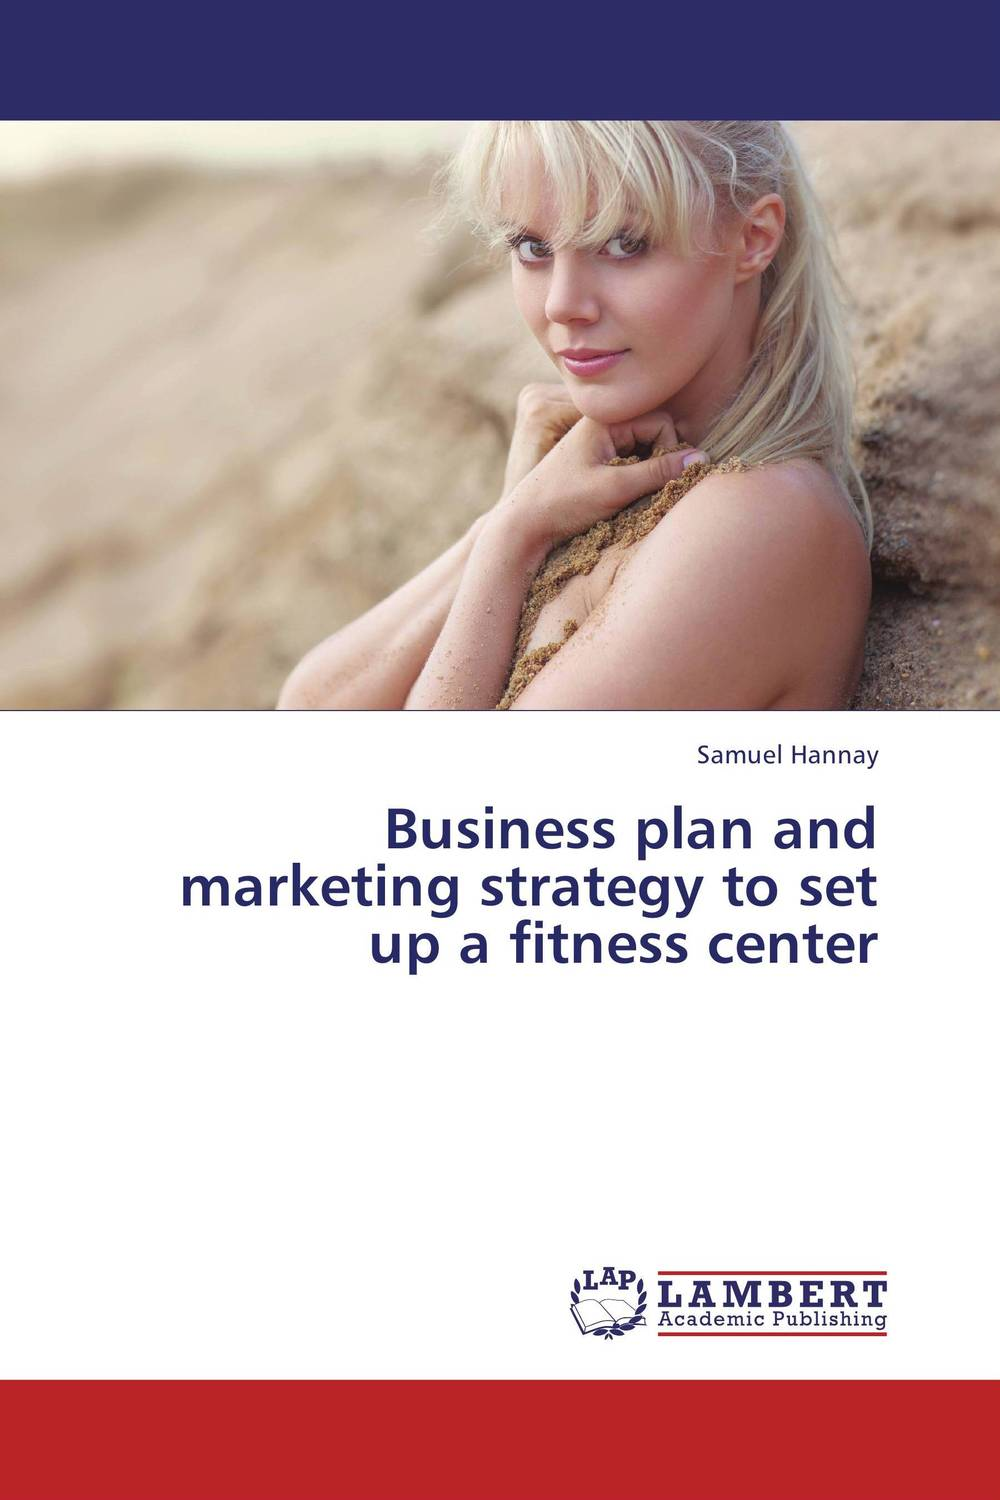 Business plan and marketing strategy to set up a fitness center